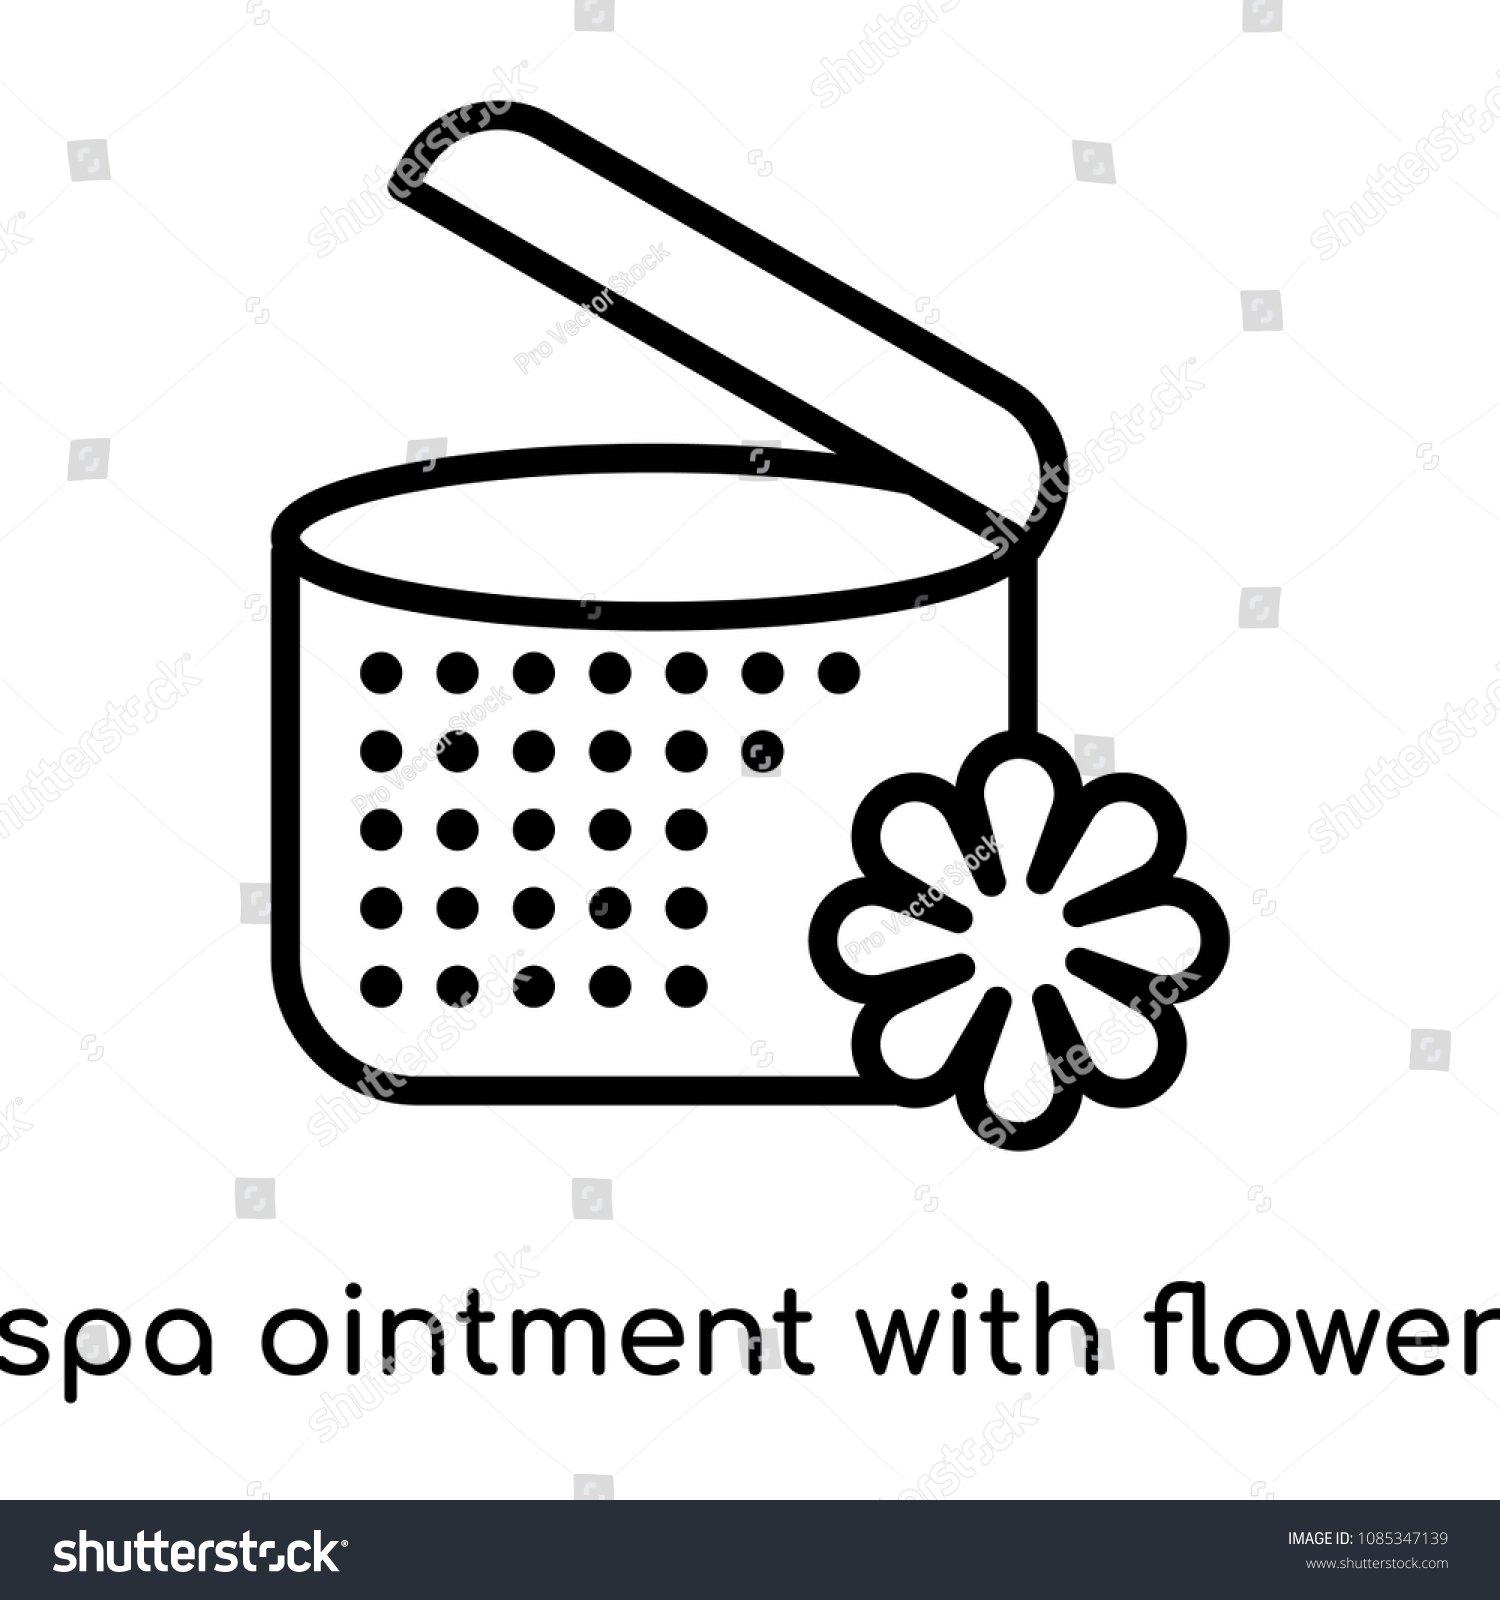 Spa Ointment Flower Icon Isolated On Stock Vector Royalty Free